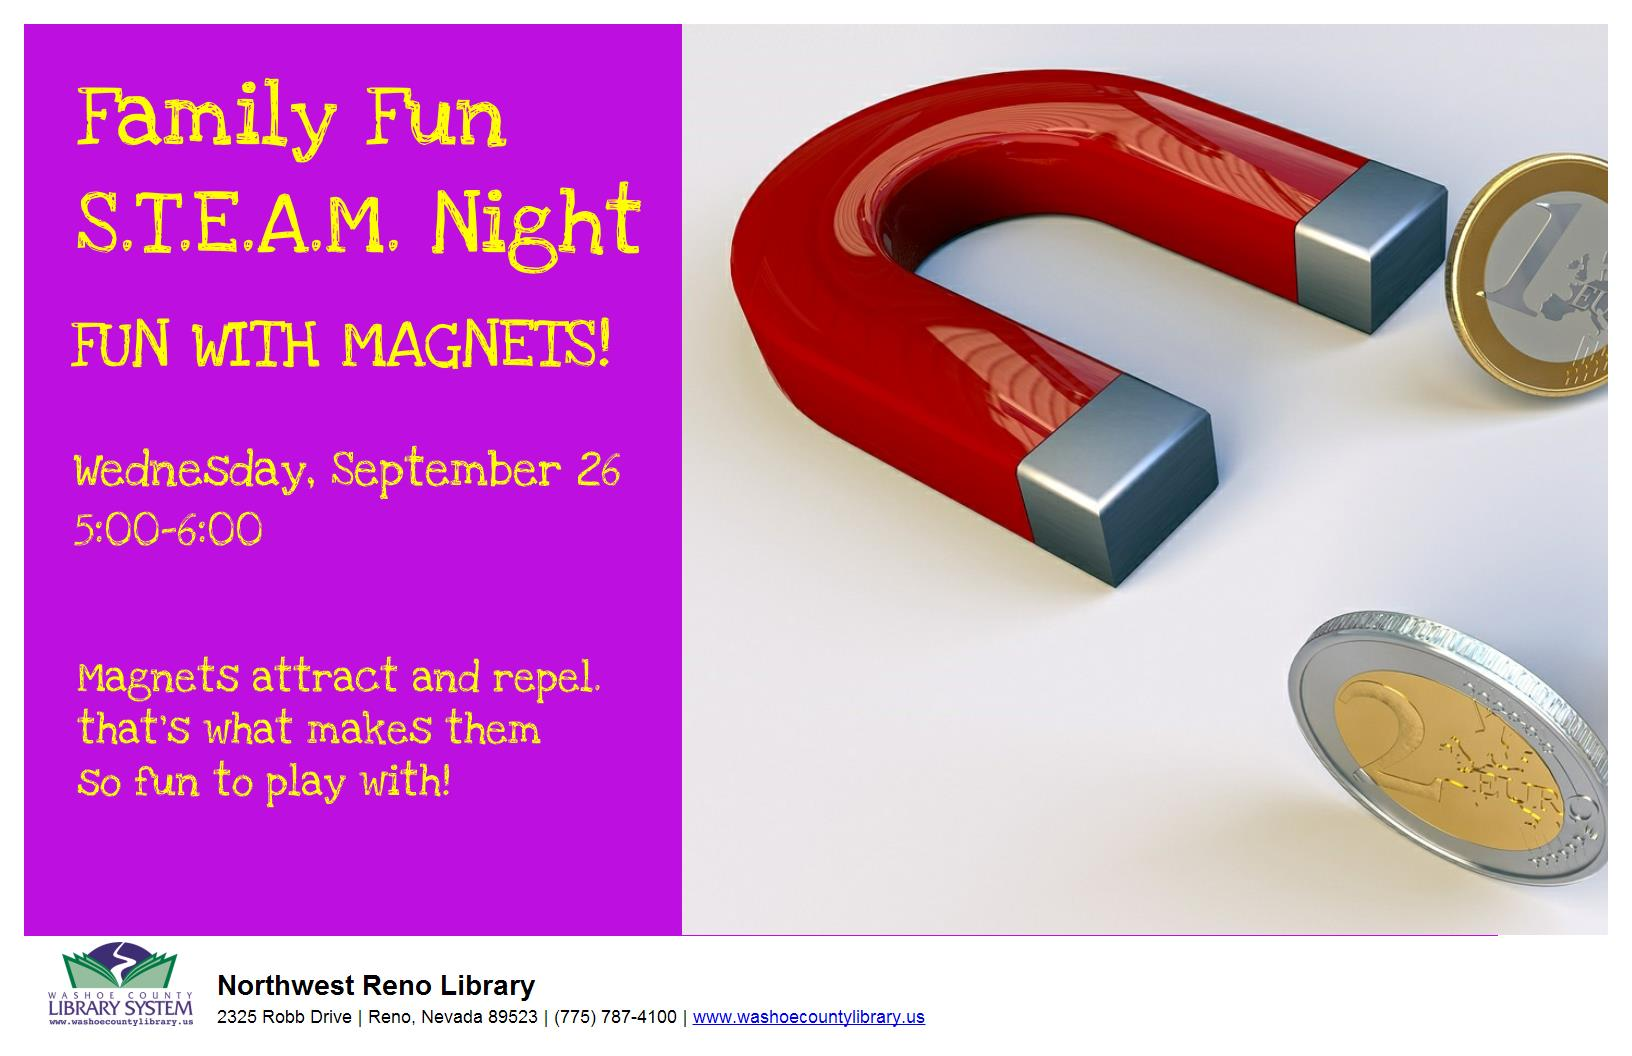 Family Fun Night: STEAM POWER - Fun with Magnets